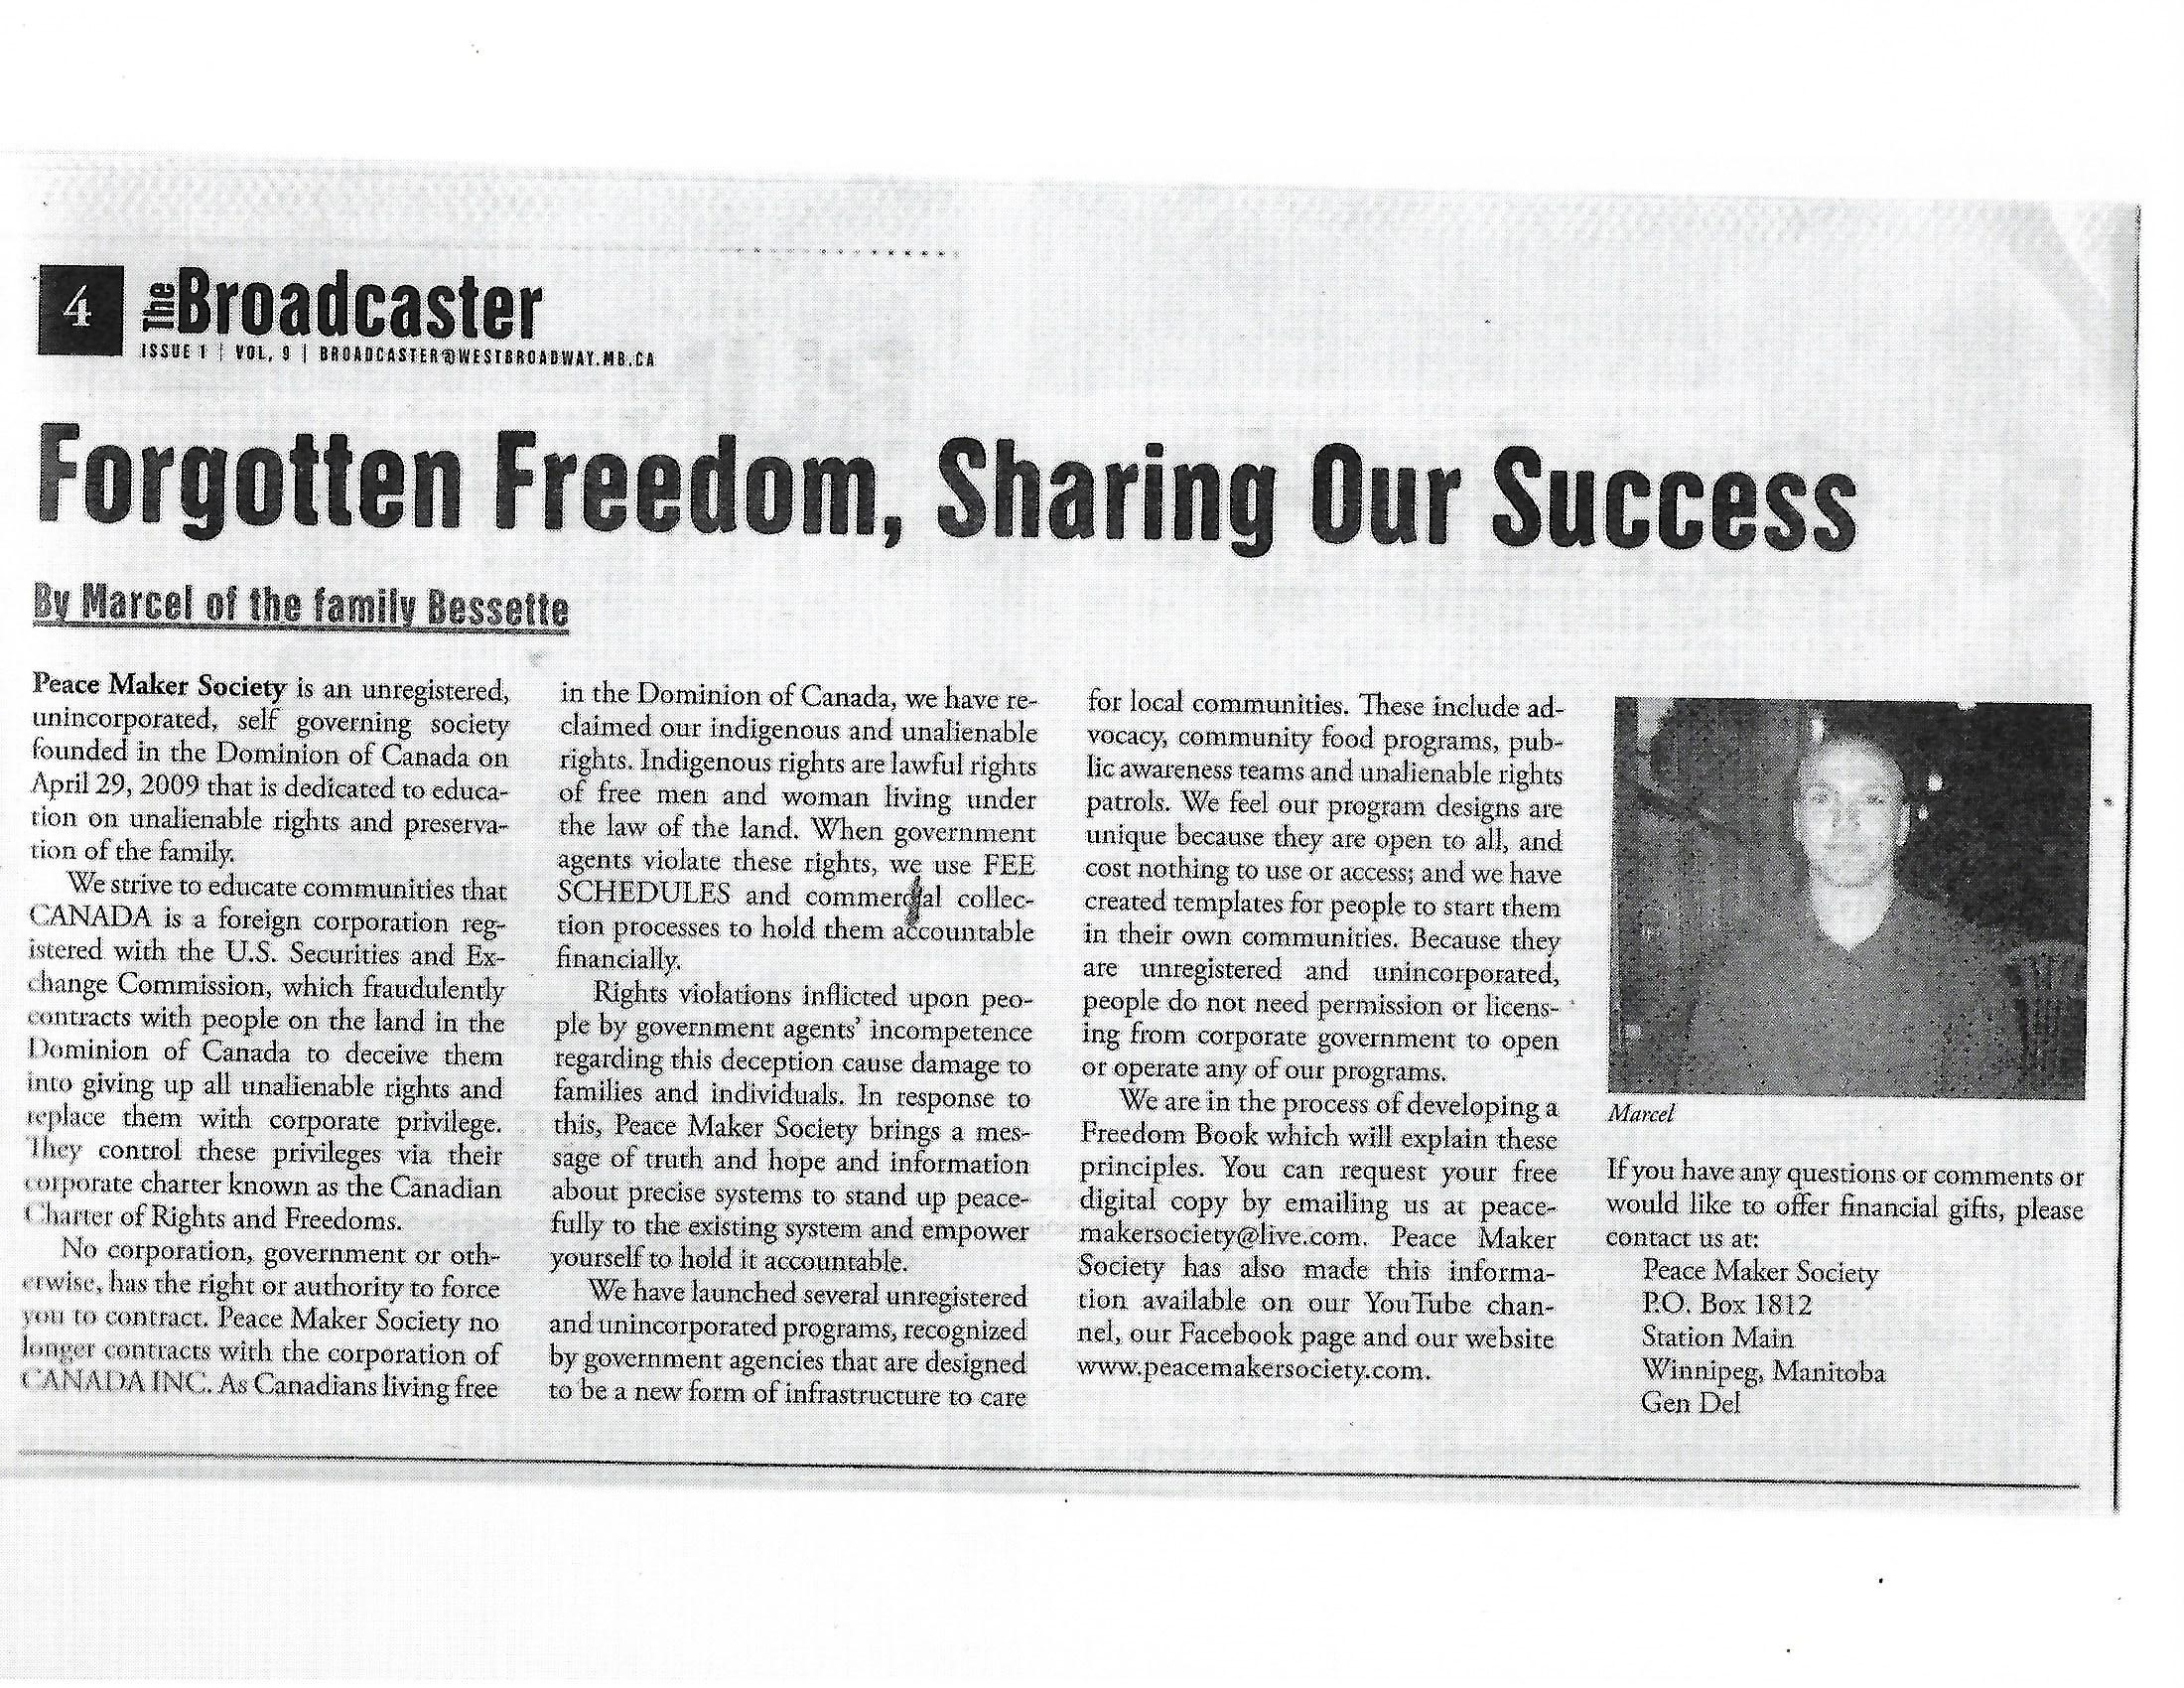 Article-Forgotten Freedom, Sharing Our S